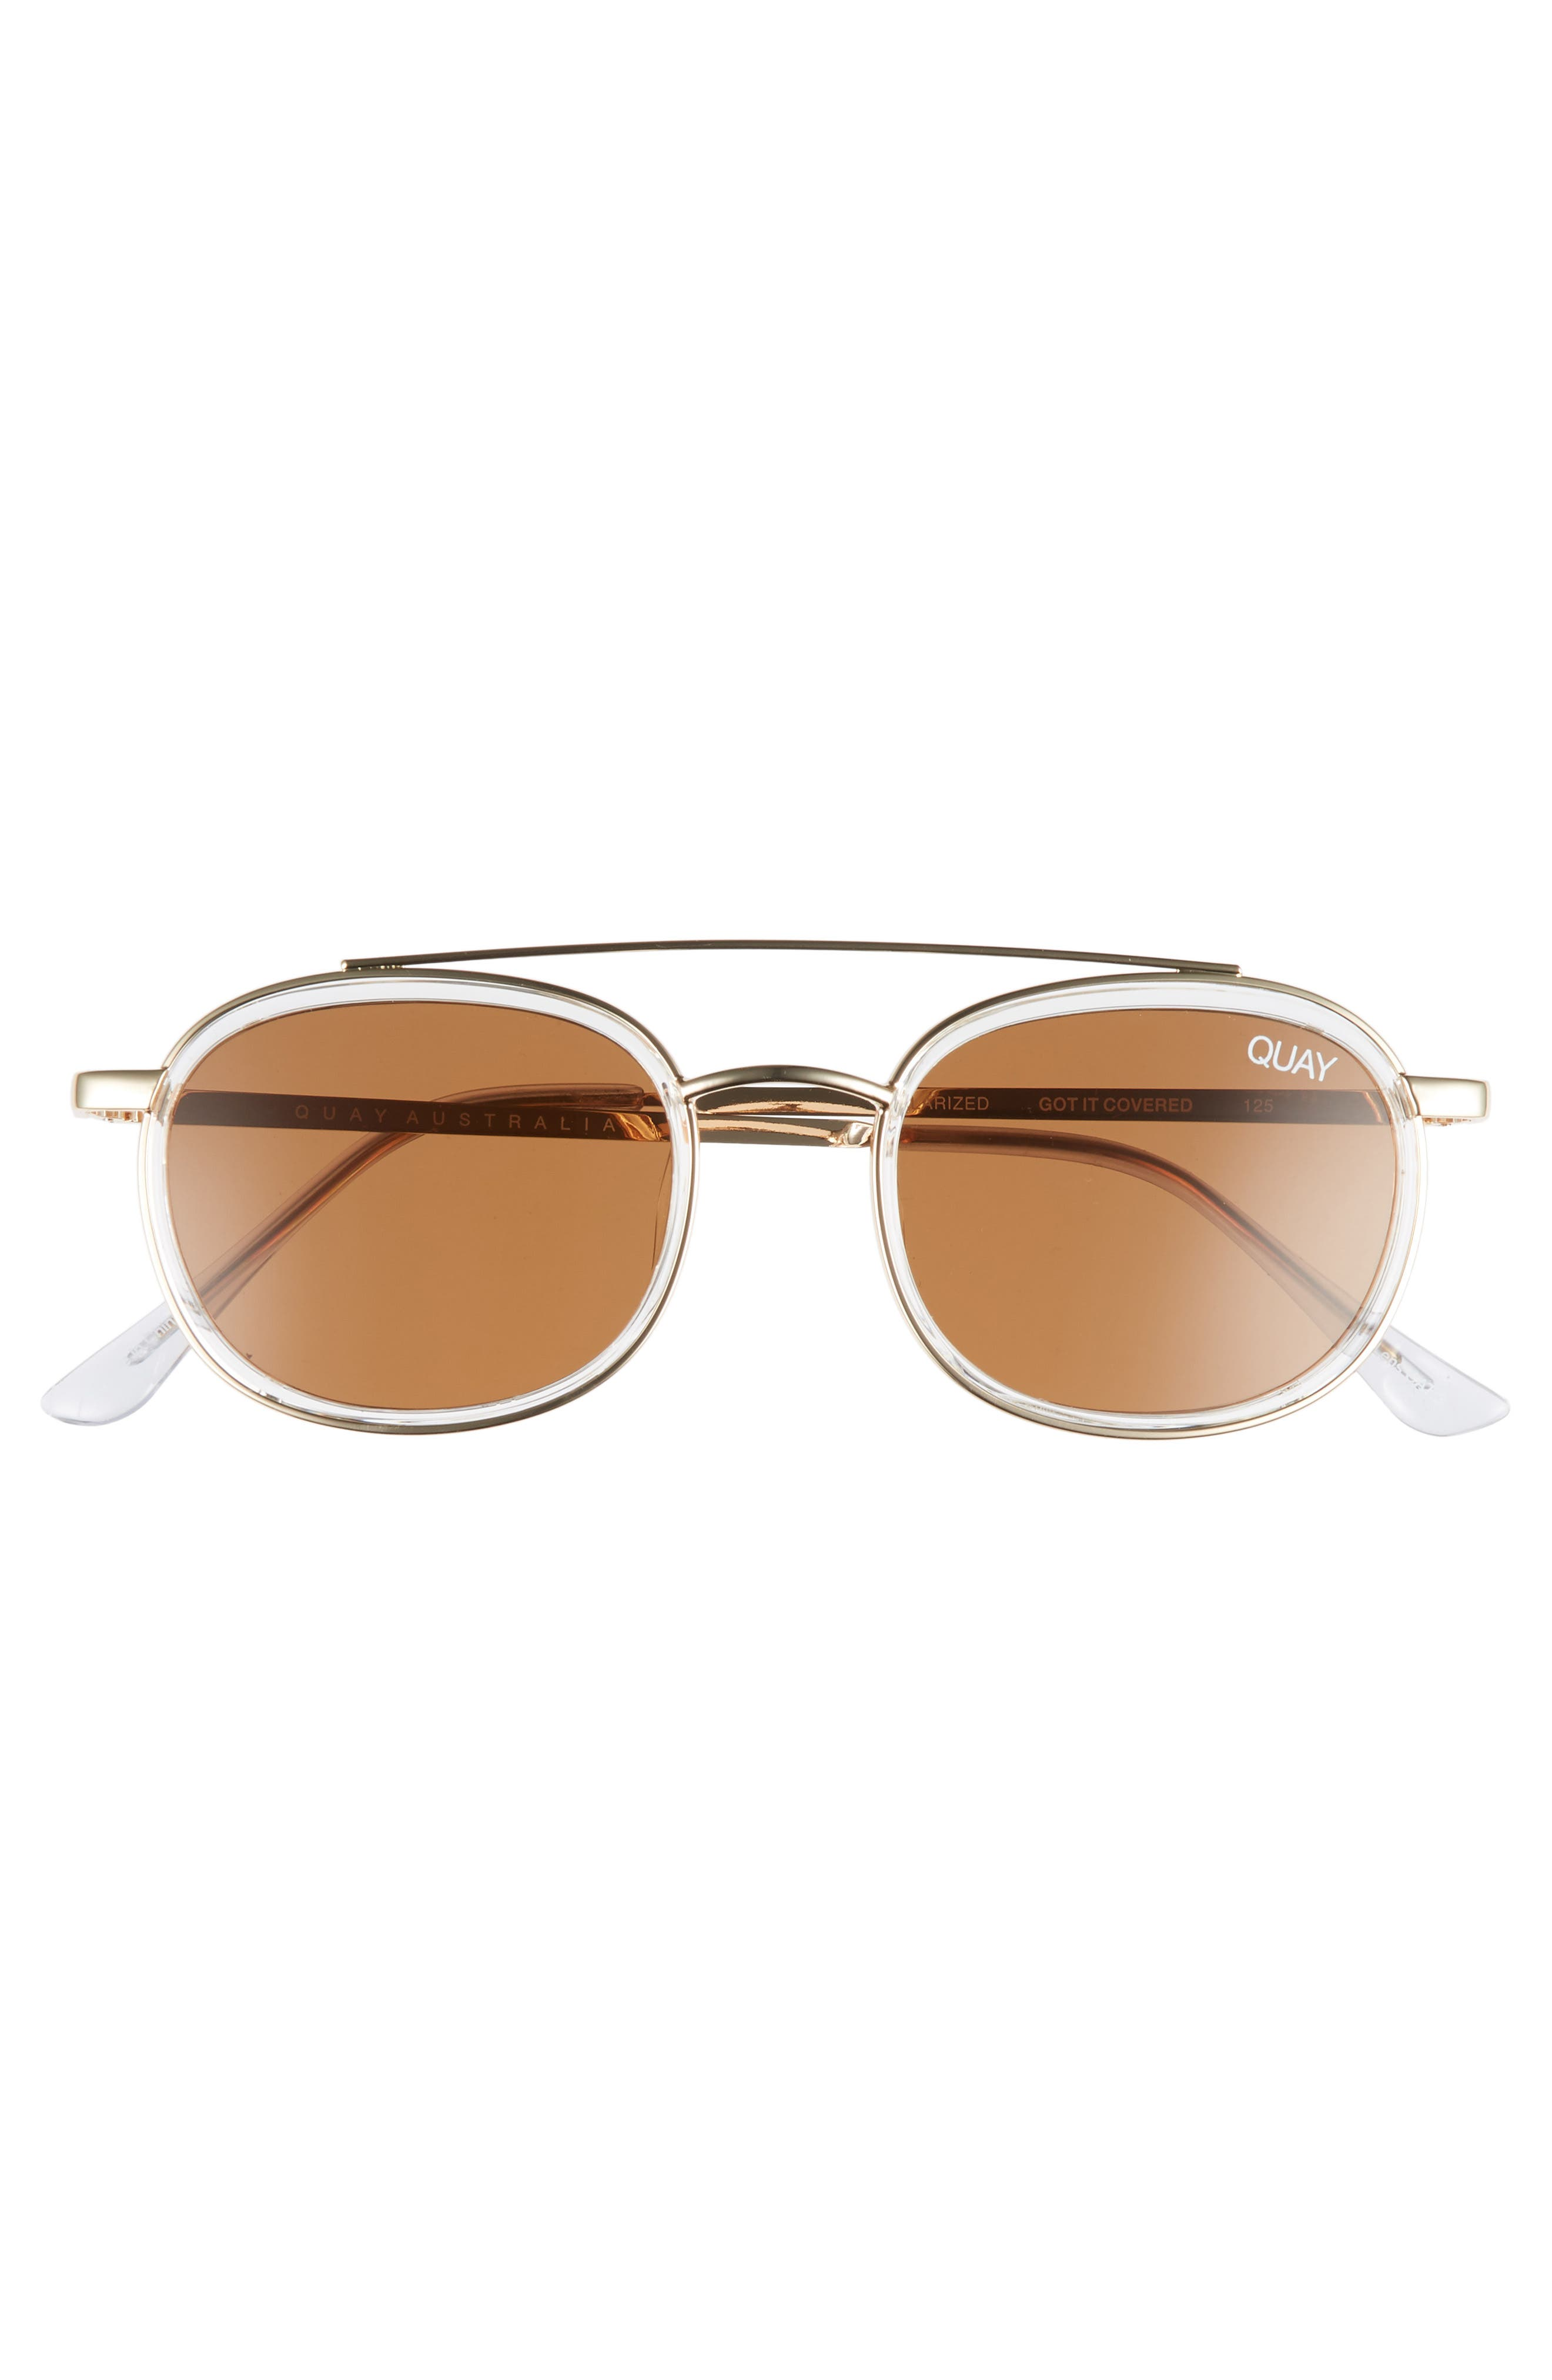 Got It Covered 50mm Polarized Sunglasses,                             Alternate thumbnail 2, color,                             CLEAR / BROWN LENS